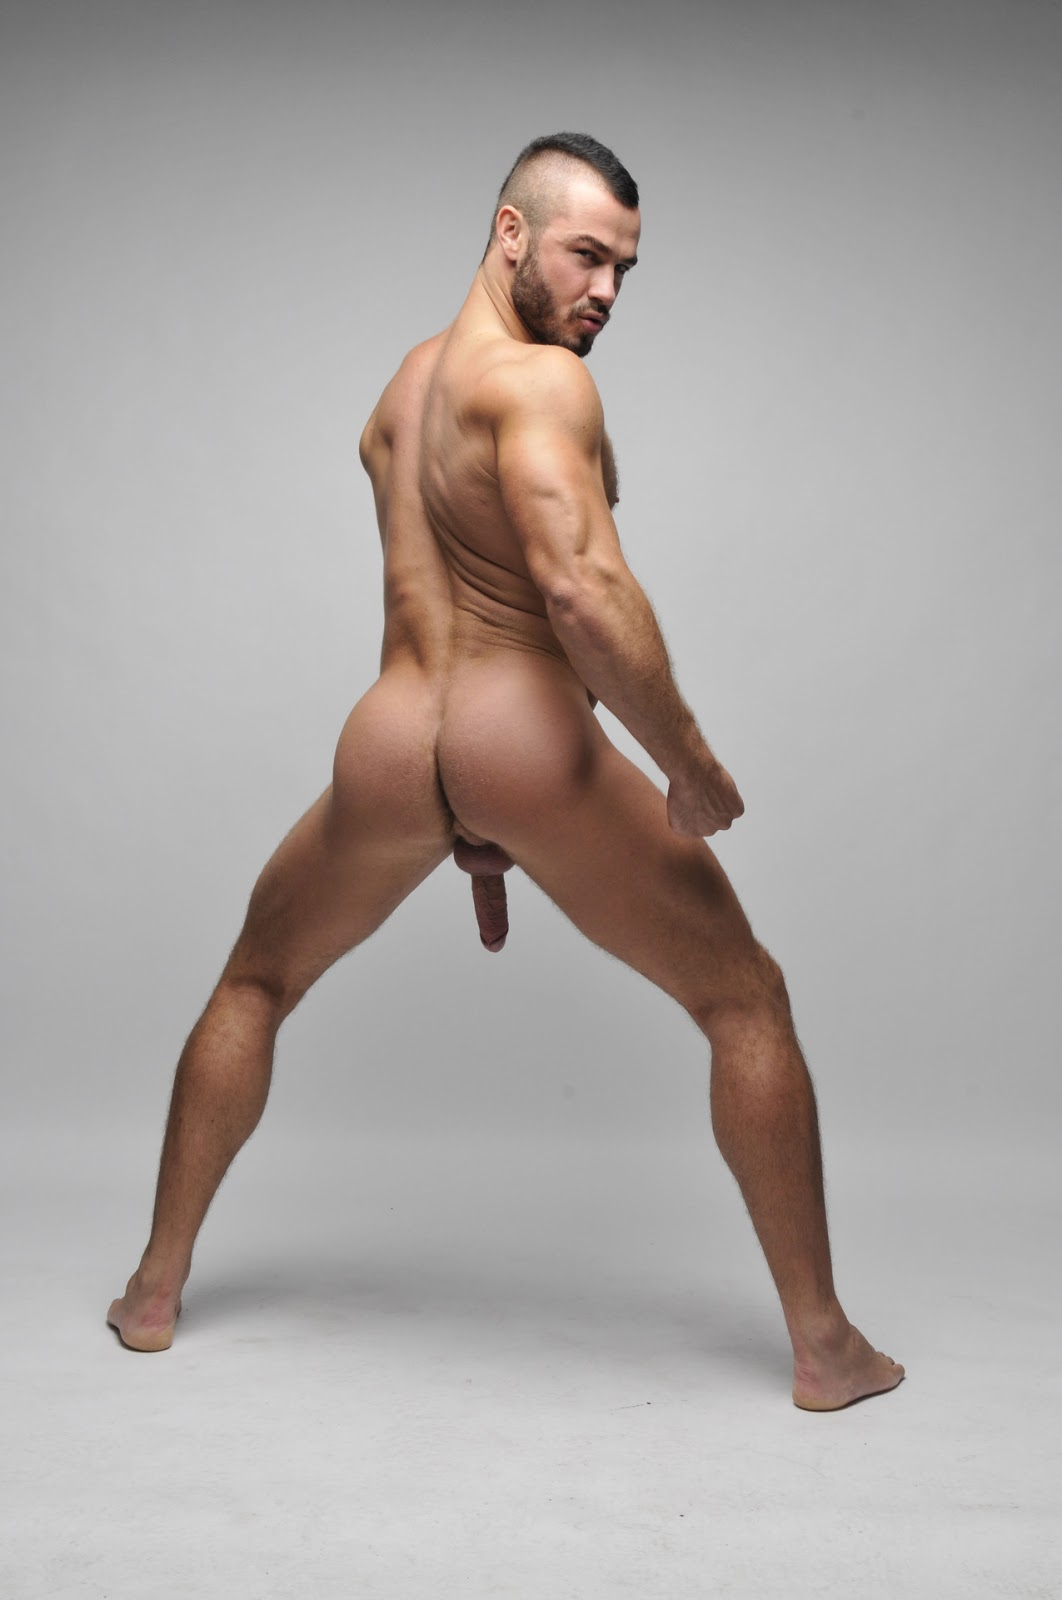 Men and boys posing naked free picture of gay